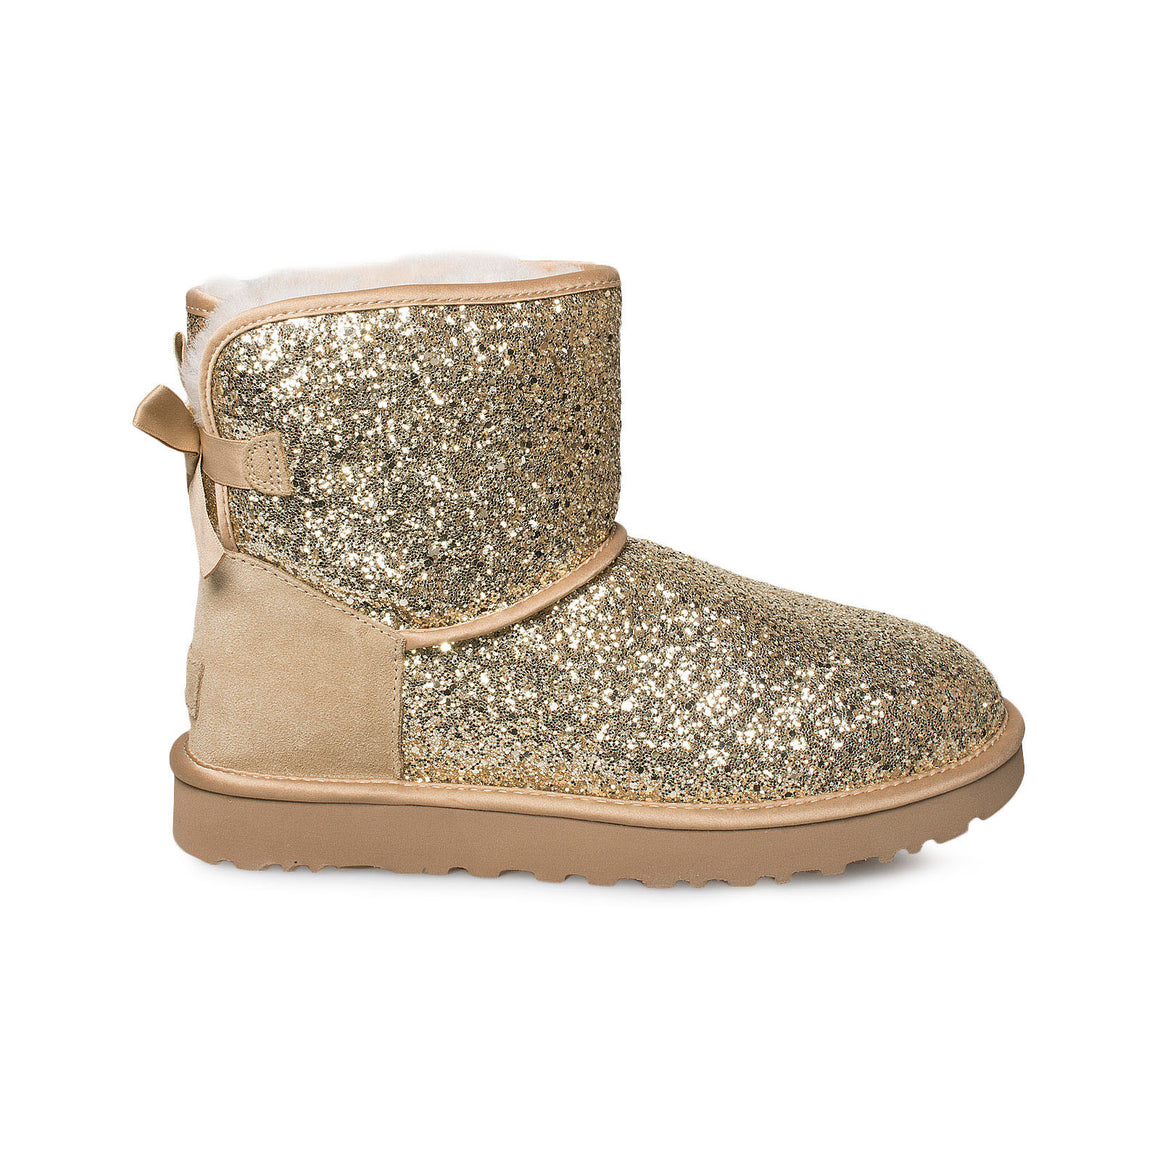 UGG Classic Mini Bow Cosmos Gold Boots - Women's